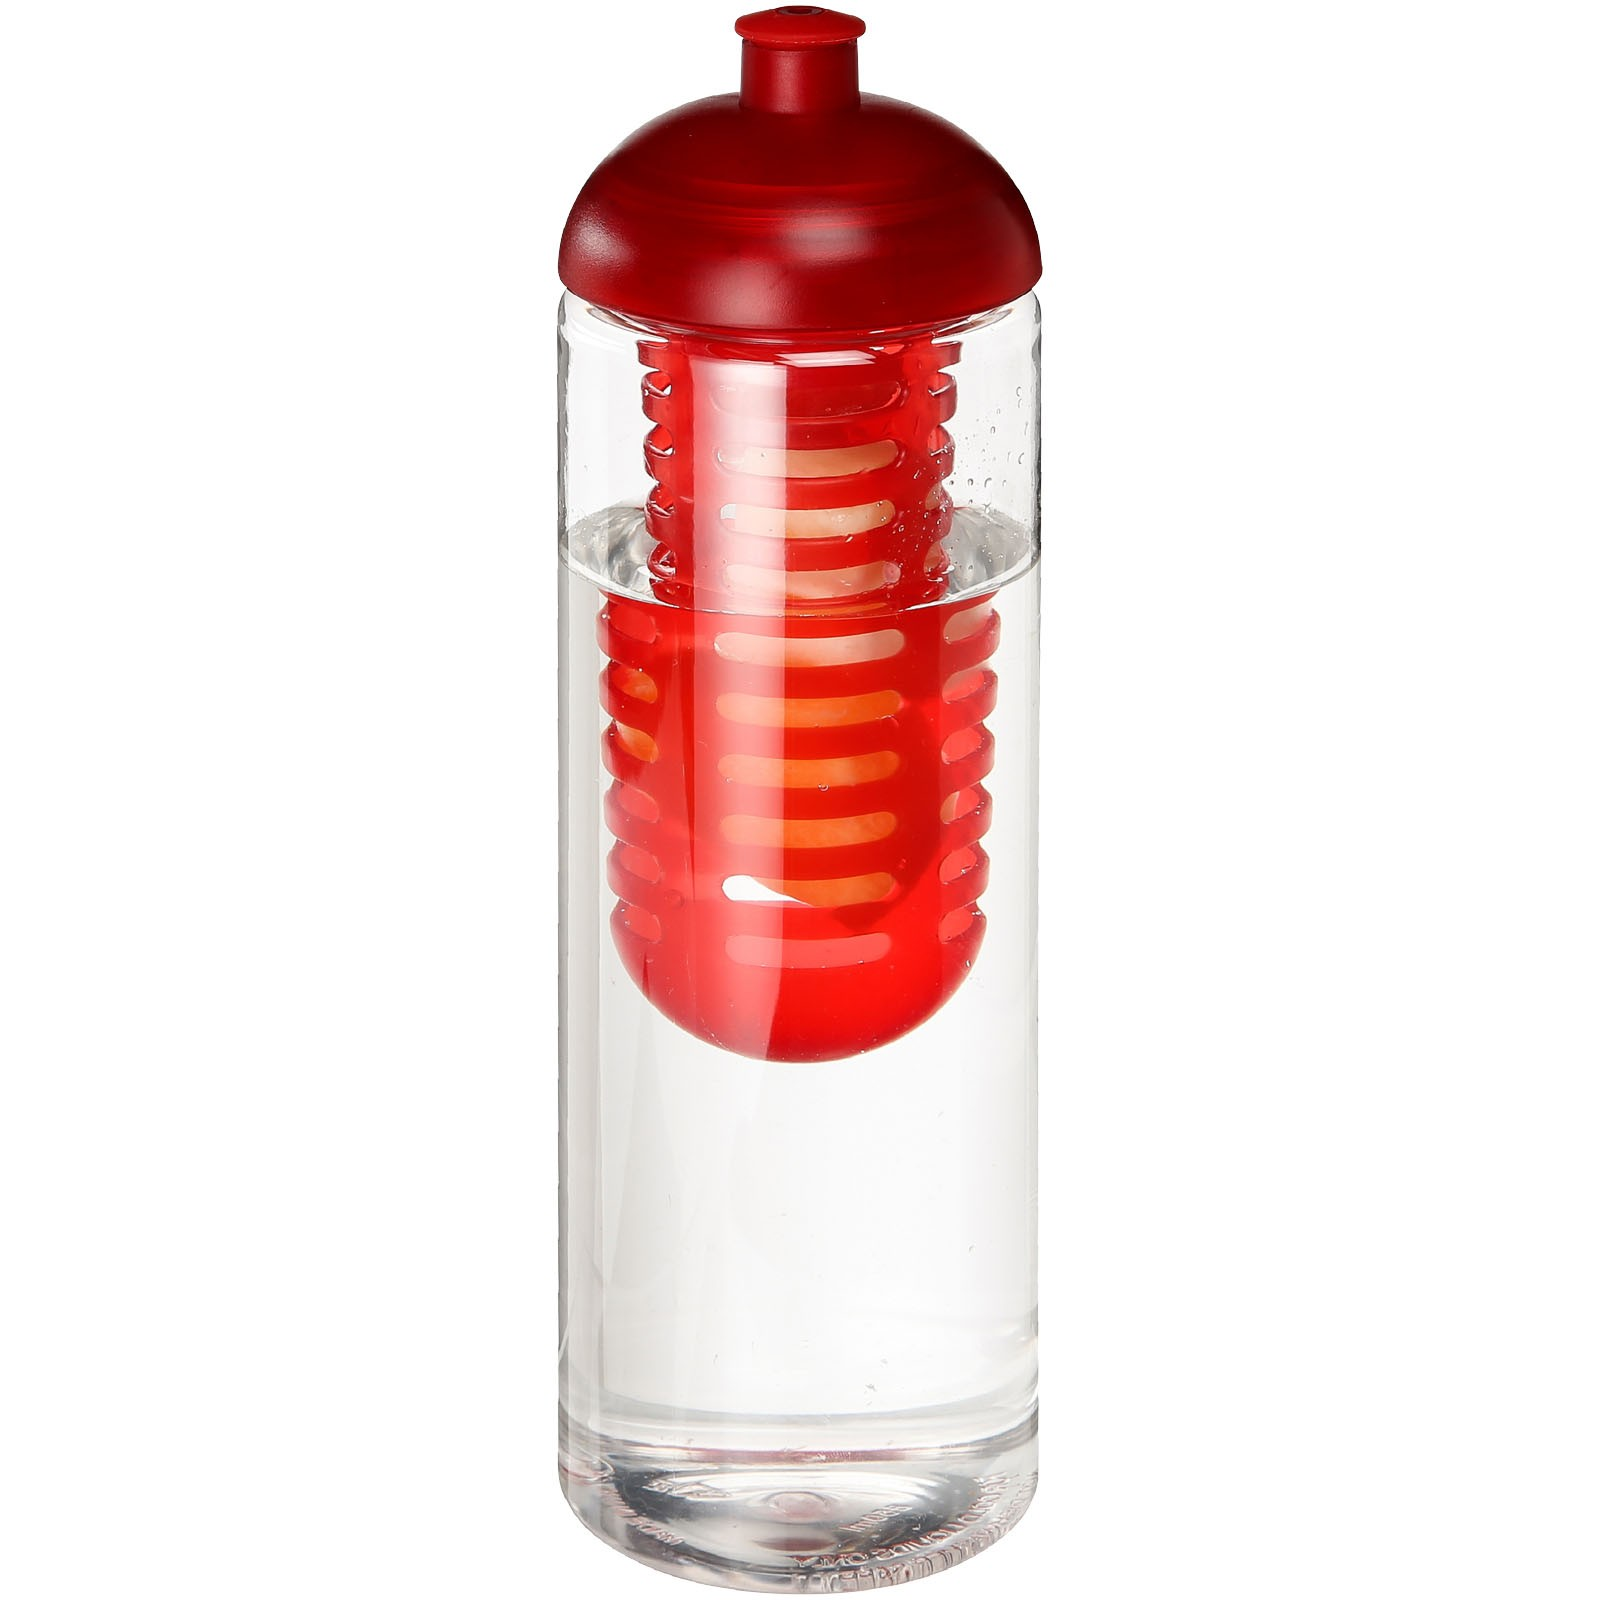 H2O Vibe 850 ml dome lid bottle & infuser - Transparent / Red